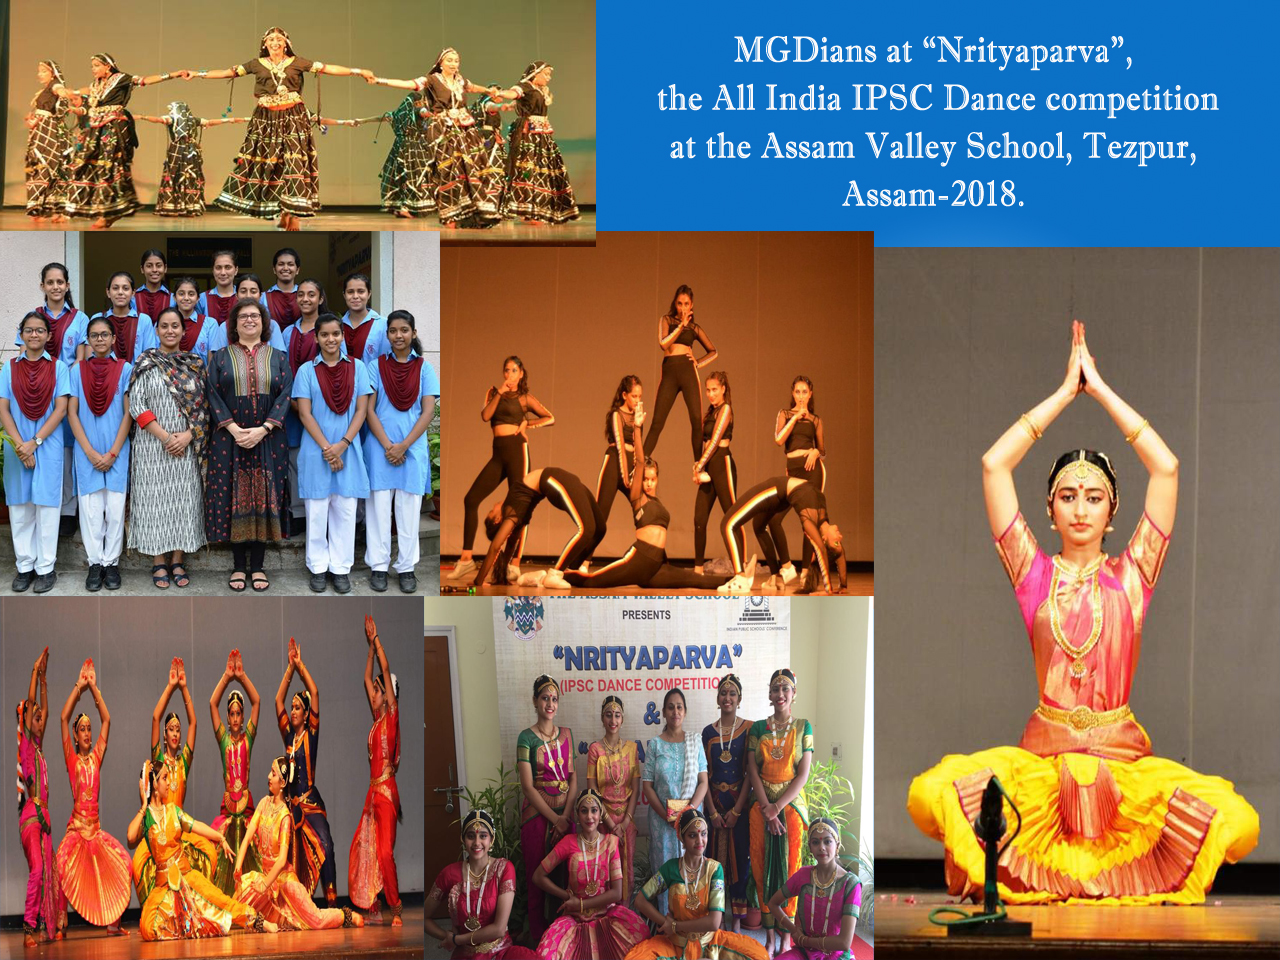 """MGDians at """"Nrityaparva"""", the All India IPSC Dance competition at the Assam Valley School, Tezpur, Assam-2018."""